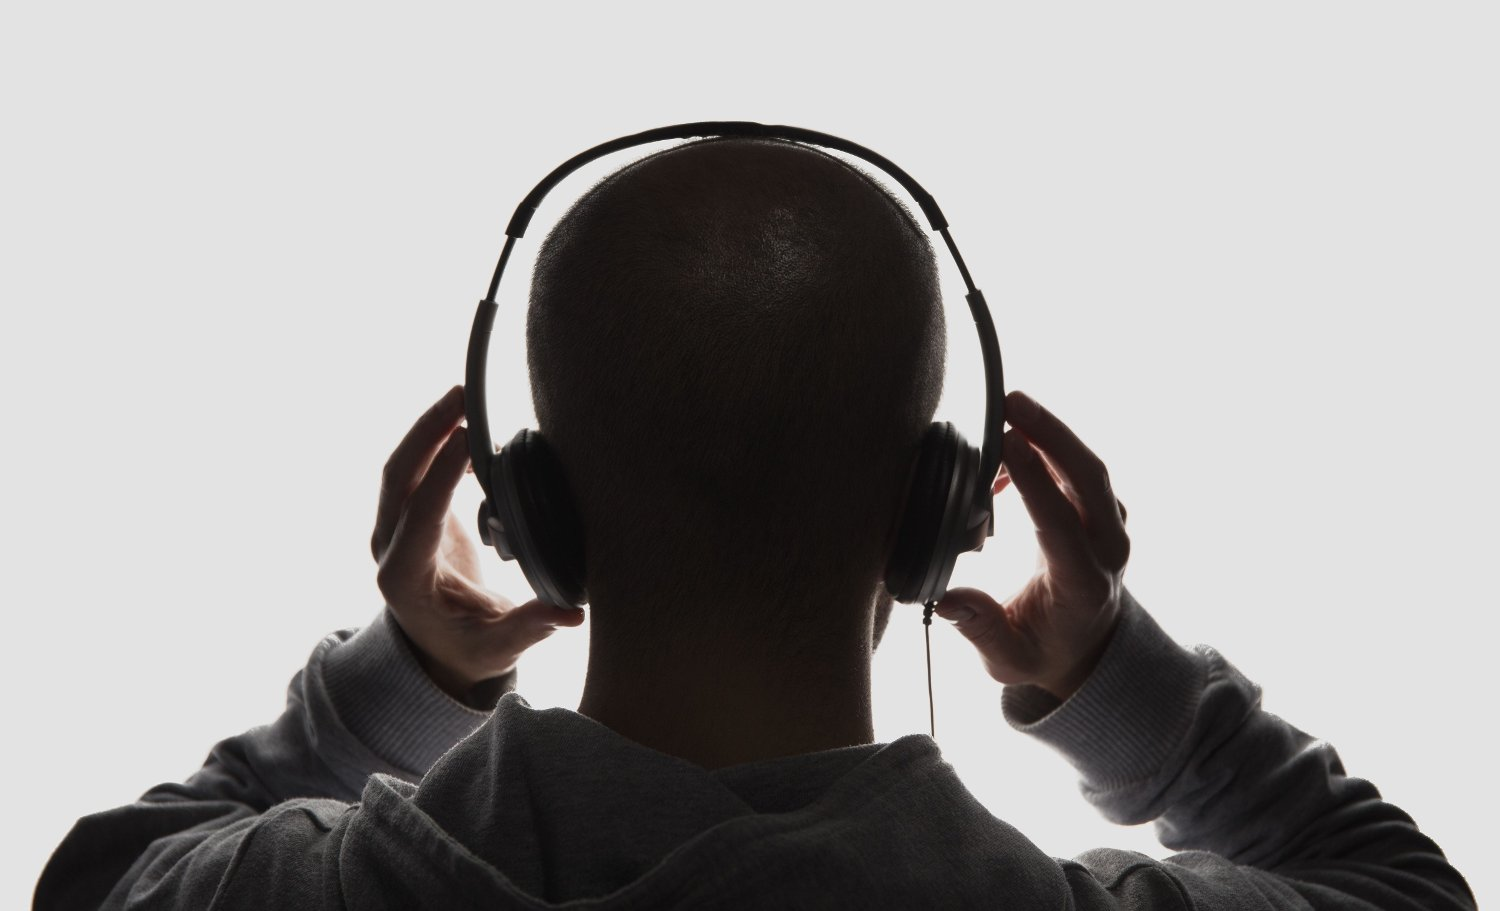 Male silhouette with hands holding headphones Male silhouette with headphones on white background.